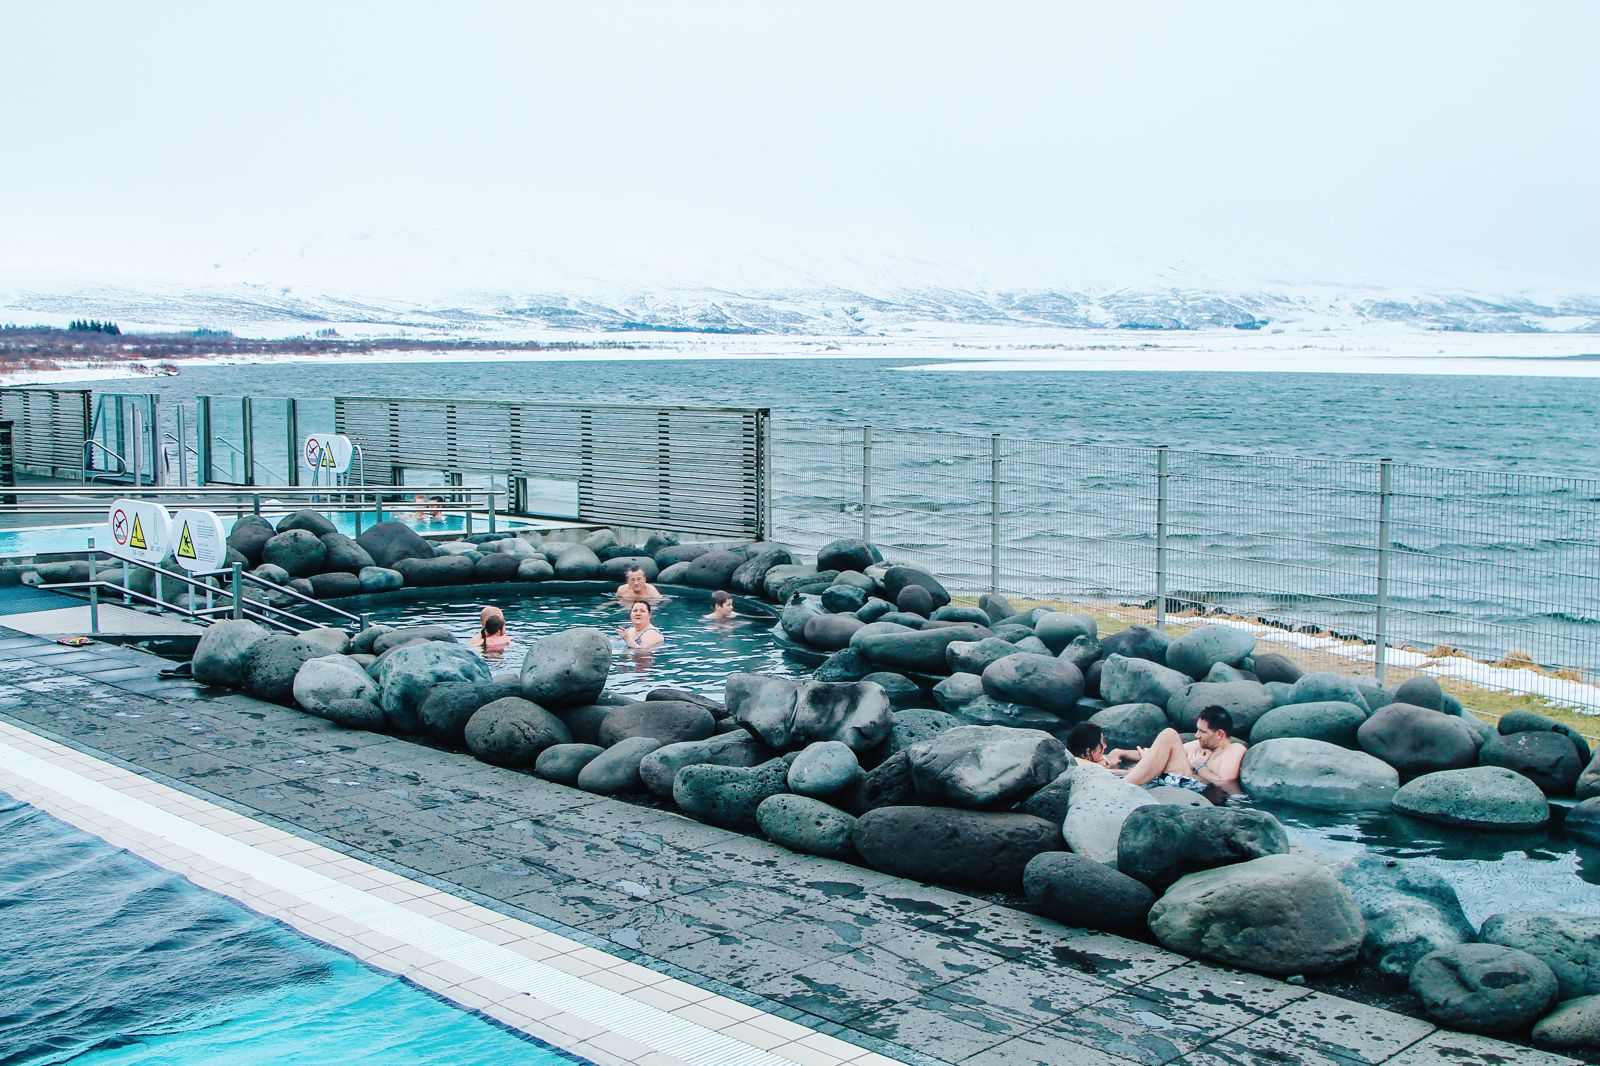 The 1st Day in The Land Of Fire and Ice - Iceland! Lava Baking, Geo-Thermal Pools & The Golden Circle (Part 1) (39)